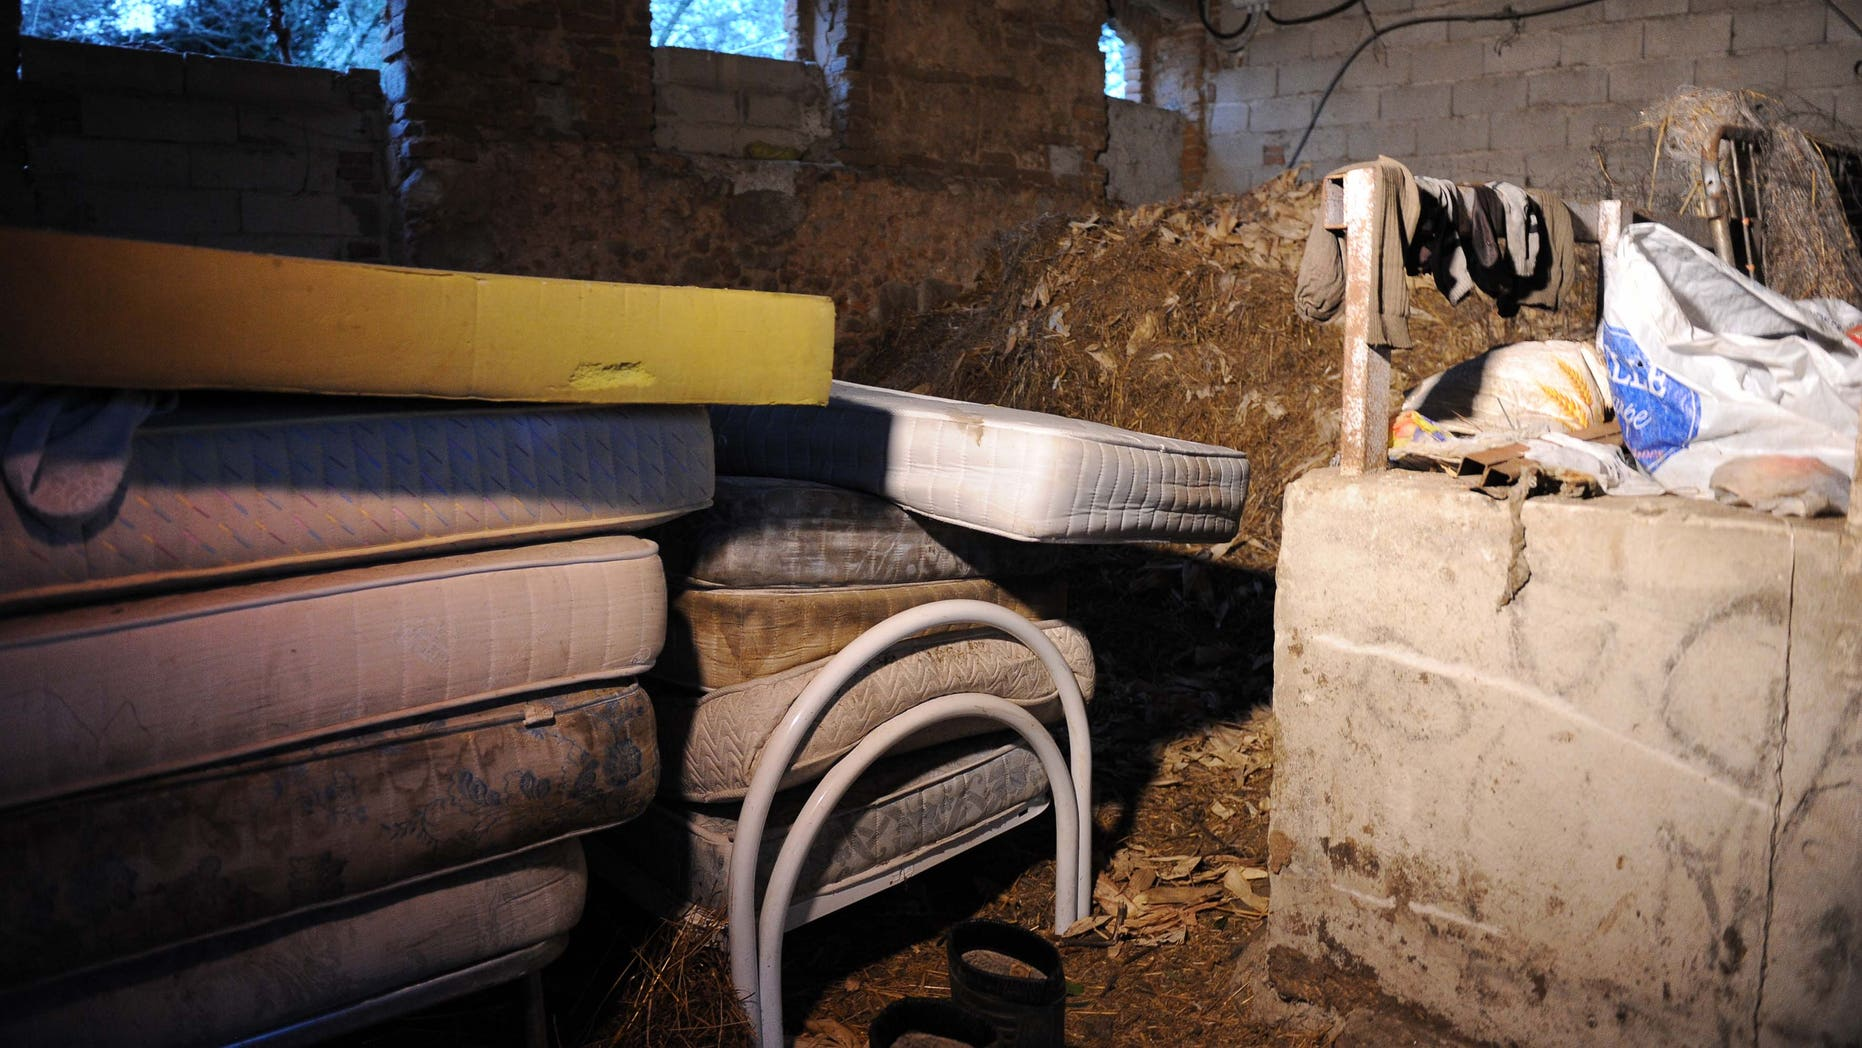 Feb. 29, 2016: A farmhouse where refugees took shelter in Southern Italy. (AP)